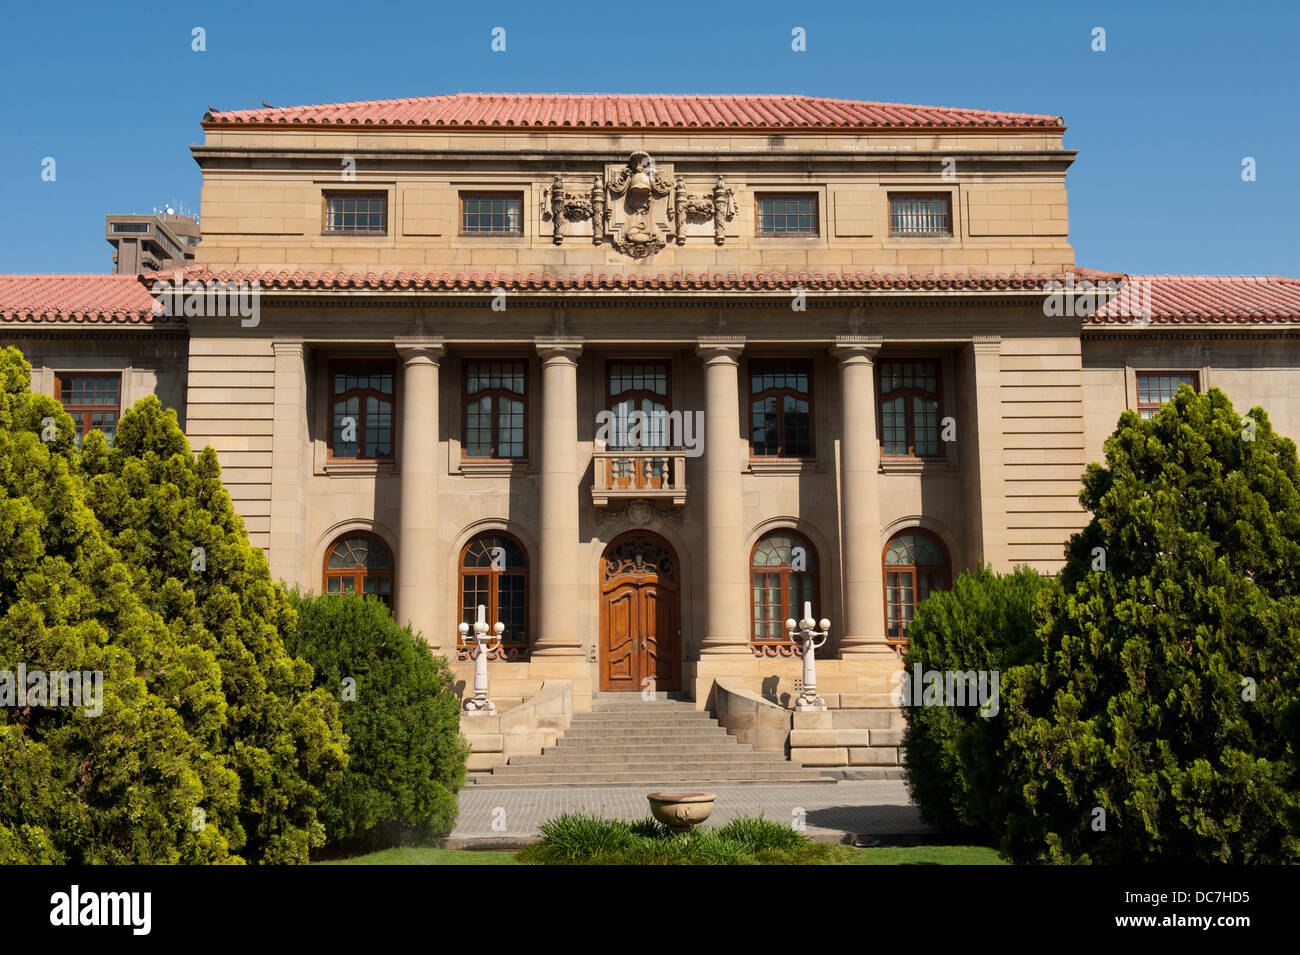 The Appeal court building, Bloemfontein, South Africa - Stock Image